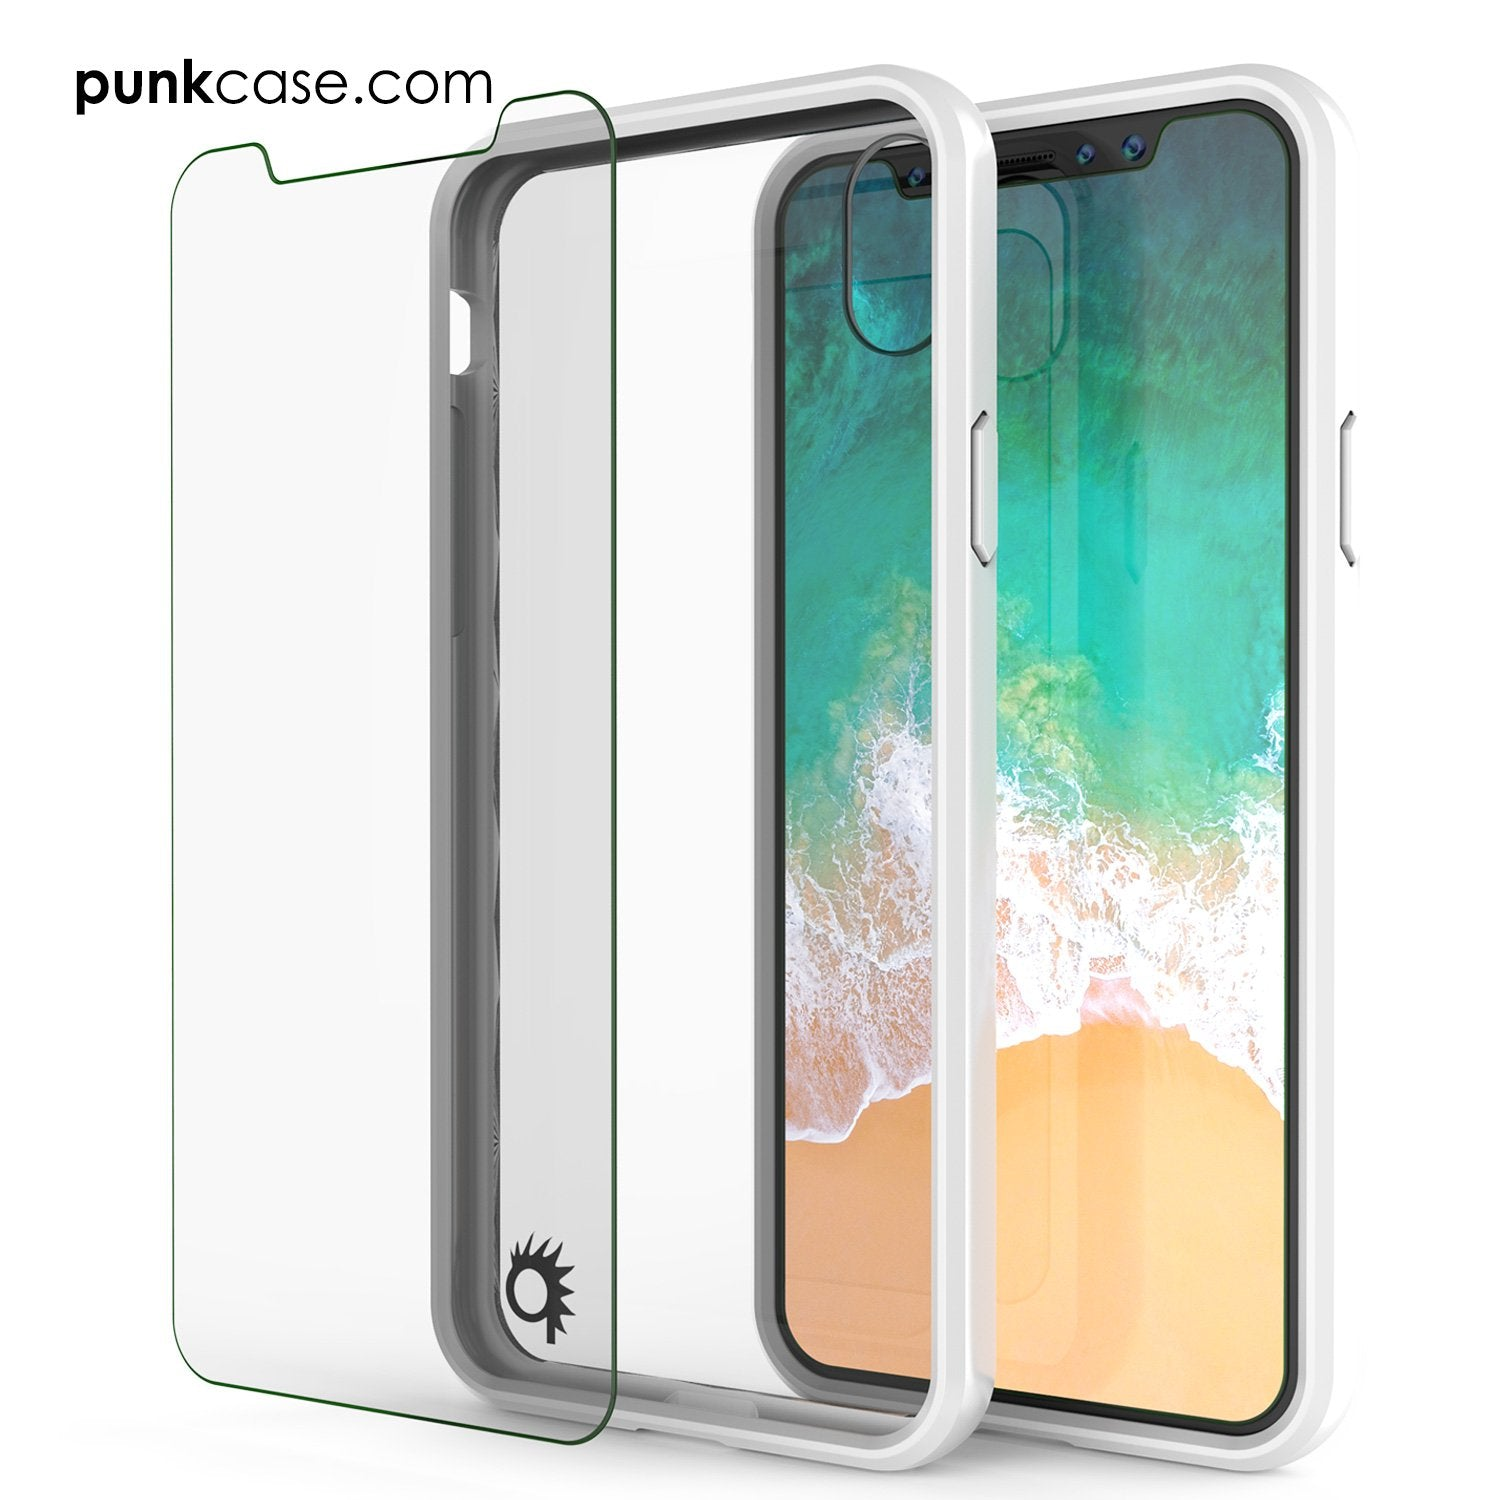 iPhone X Case, PUNKcase [LUCID 2.0 Series] [Slim Fit] Armor Cover W/Integrated Anti-Shock System & Tempered Glass PUNKSHIELD Screen Protector [White]